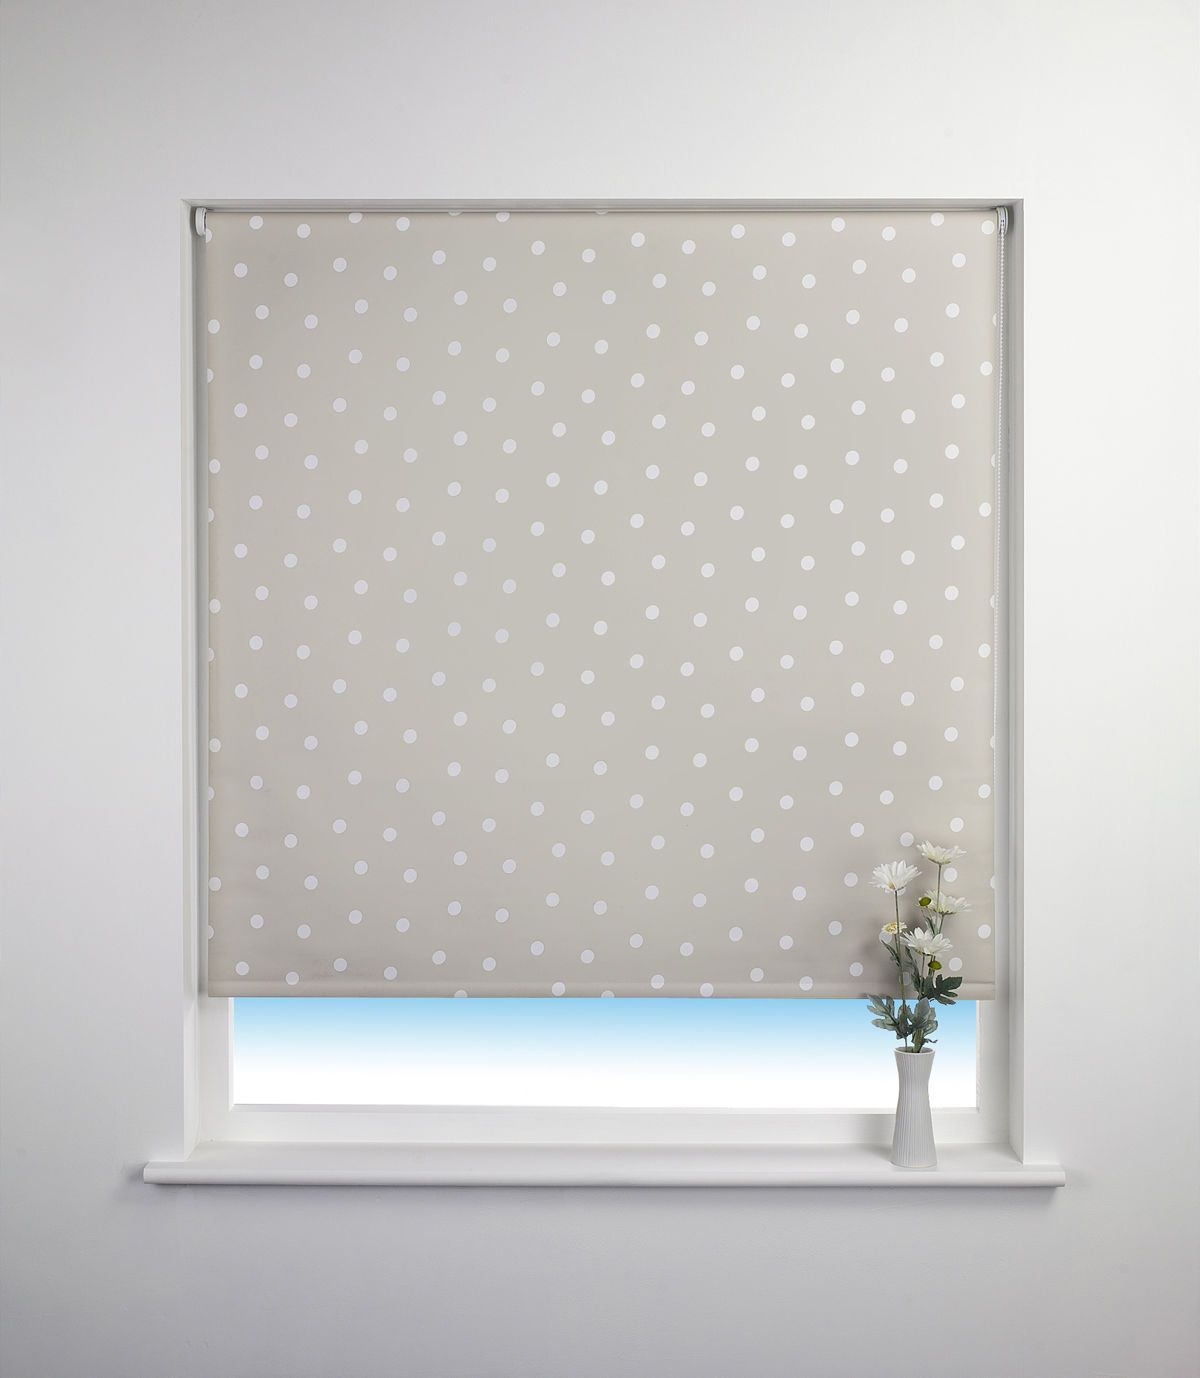 blackout blinds for baby room. 77+ Blackout Blinds For Baby Room - Low Budget Bedroom Decorating Ideas Check More At